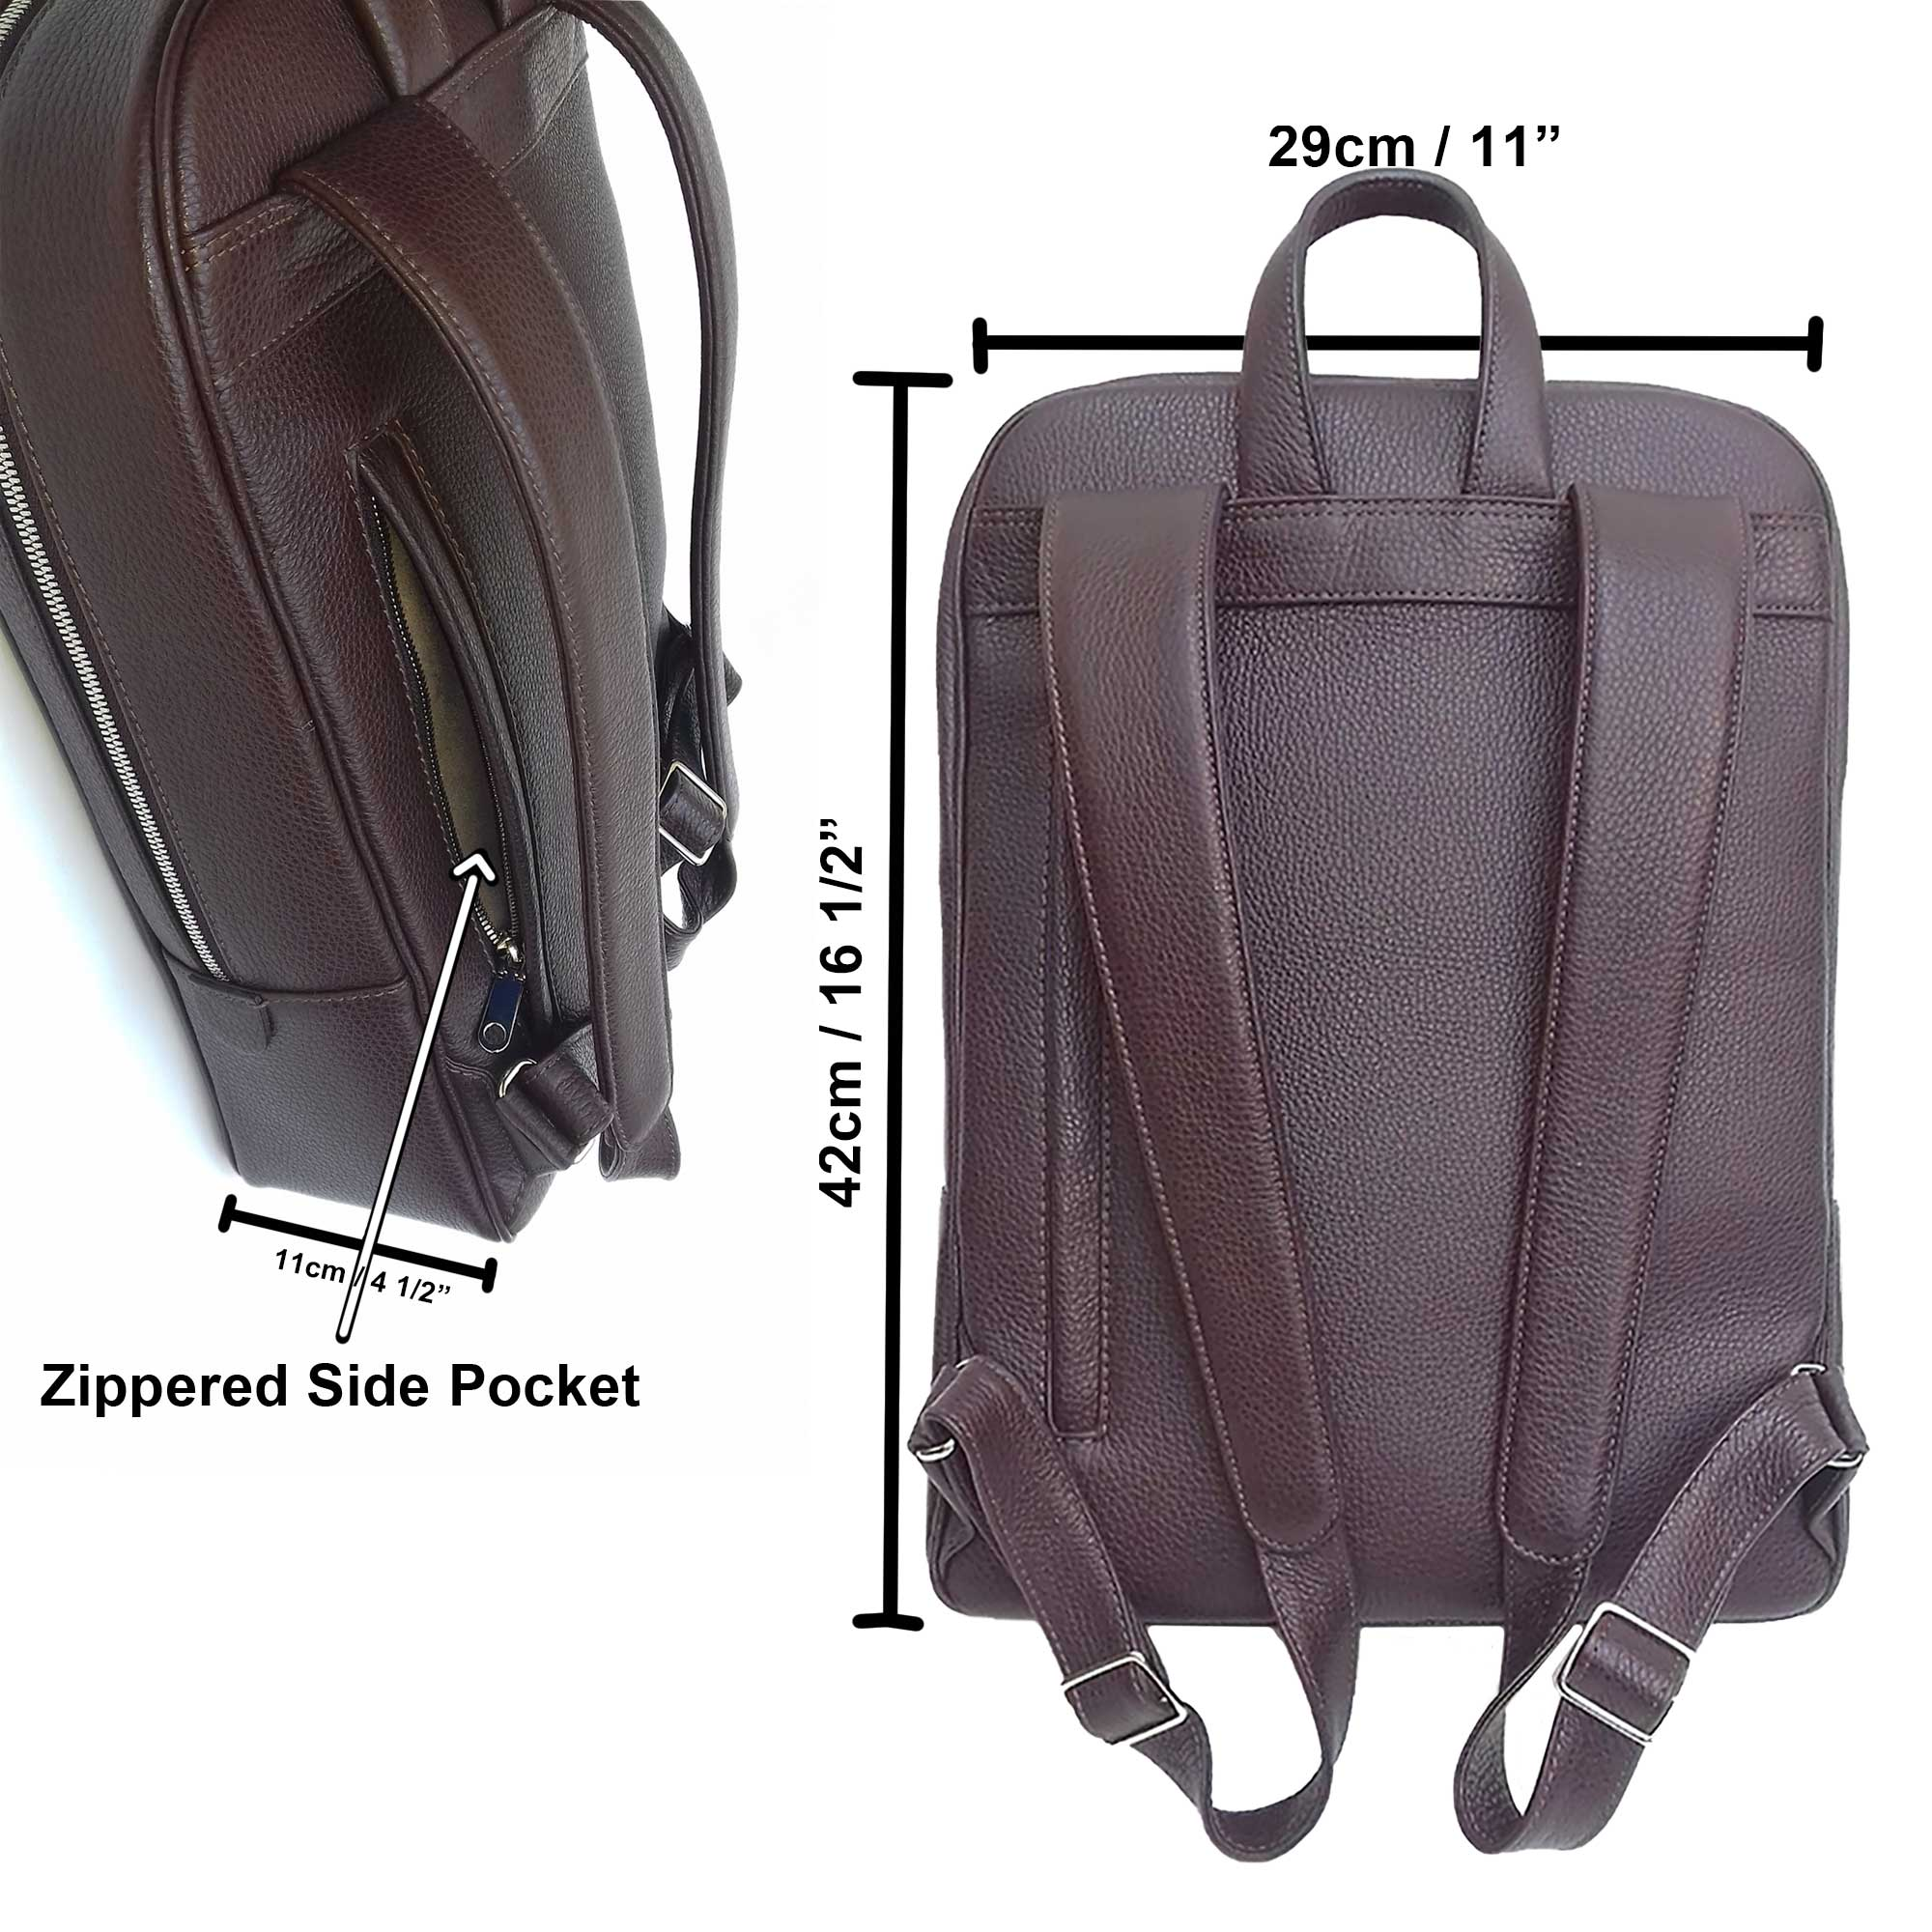 Backpack, Italian Leather Backpack Brown, Zippered Side Pocket and Dimensions - Made in Italy for DiLoro Leather